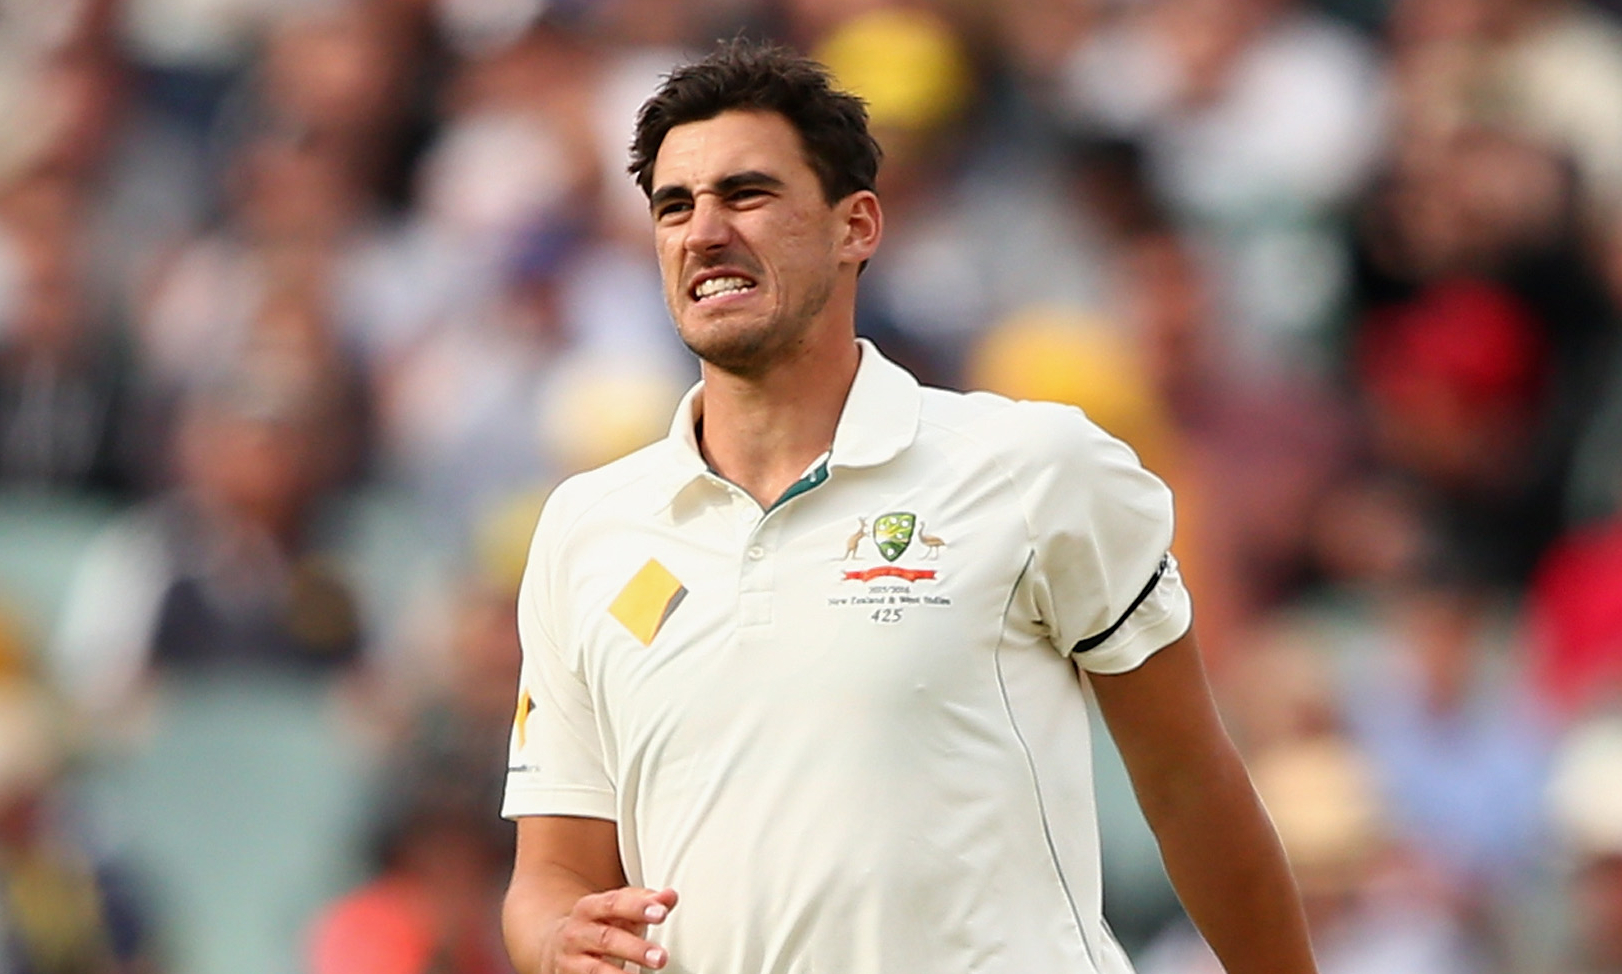 Ashes 2017-18: Mitchell Starc Brings Back The Analogy Of Mitchell Johnson's 2013-14 Heroics 12